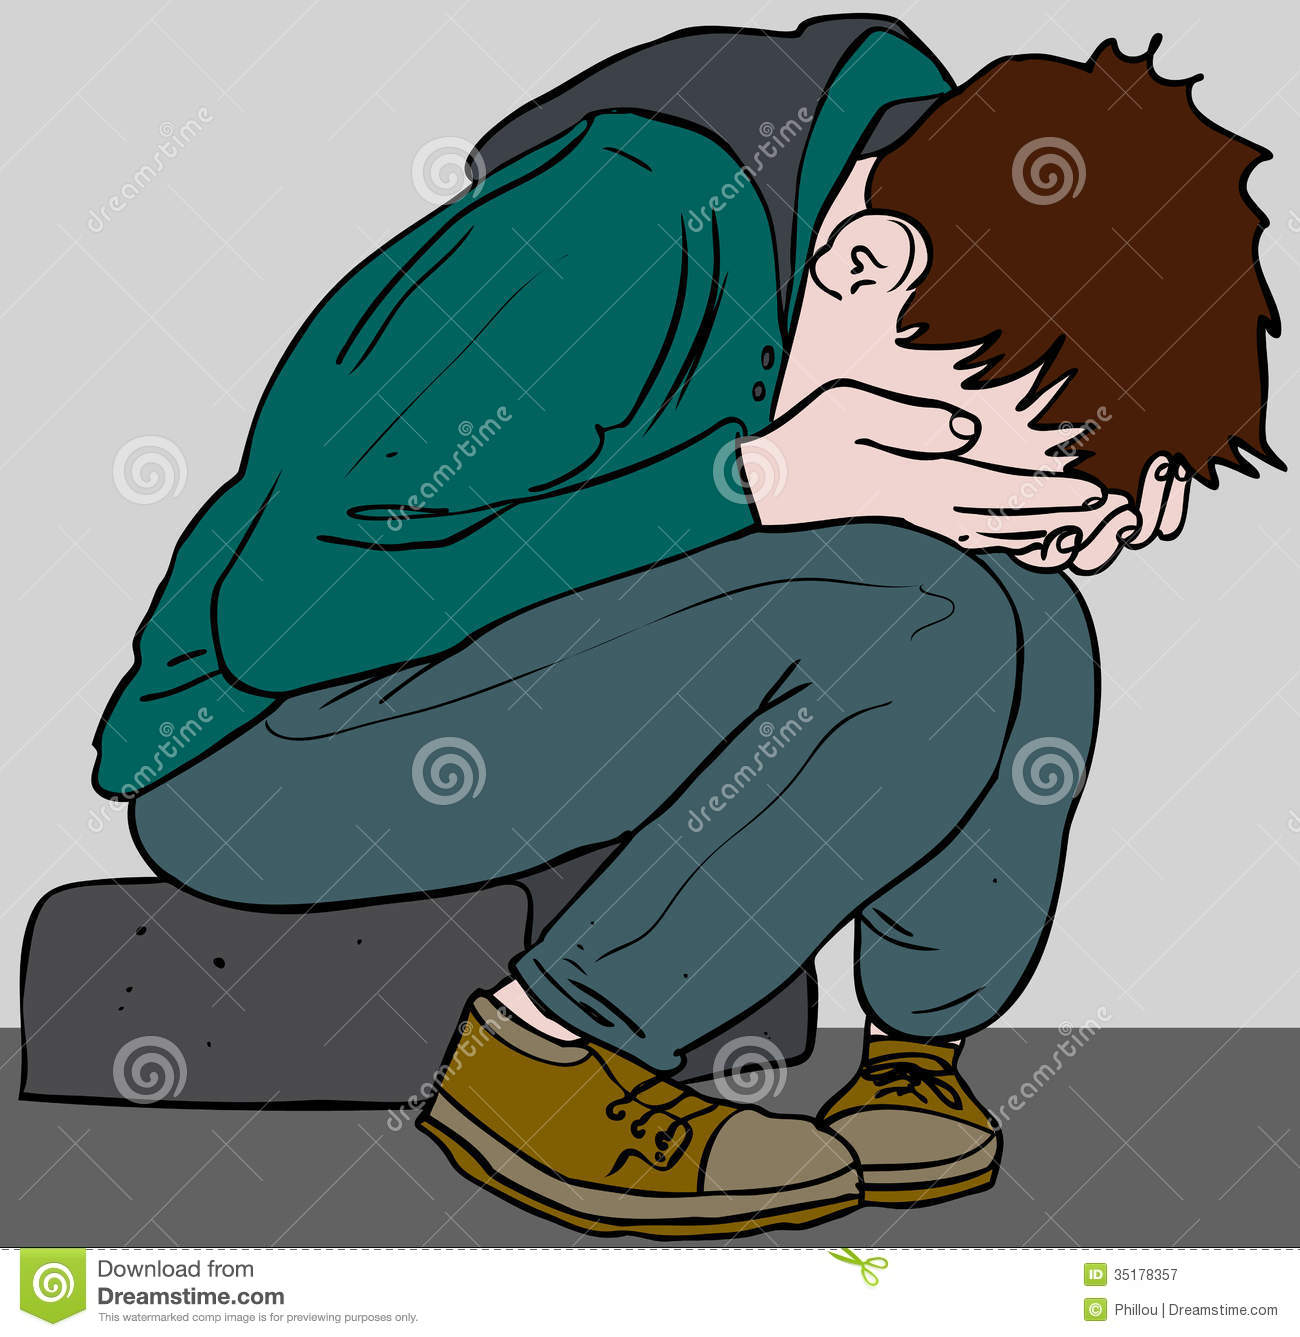 free clipart images depression - photo #26